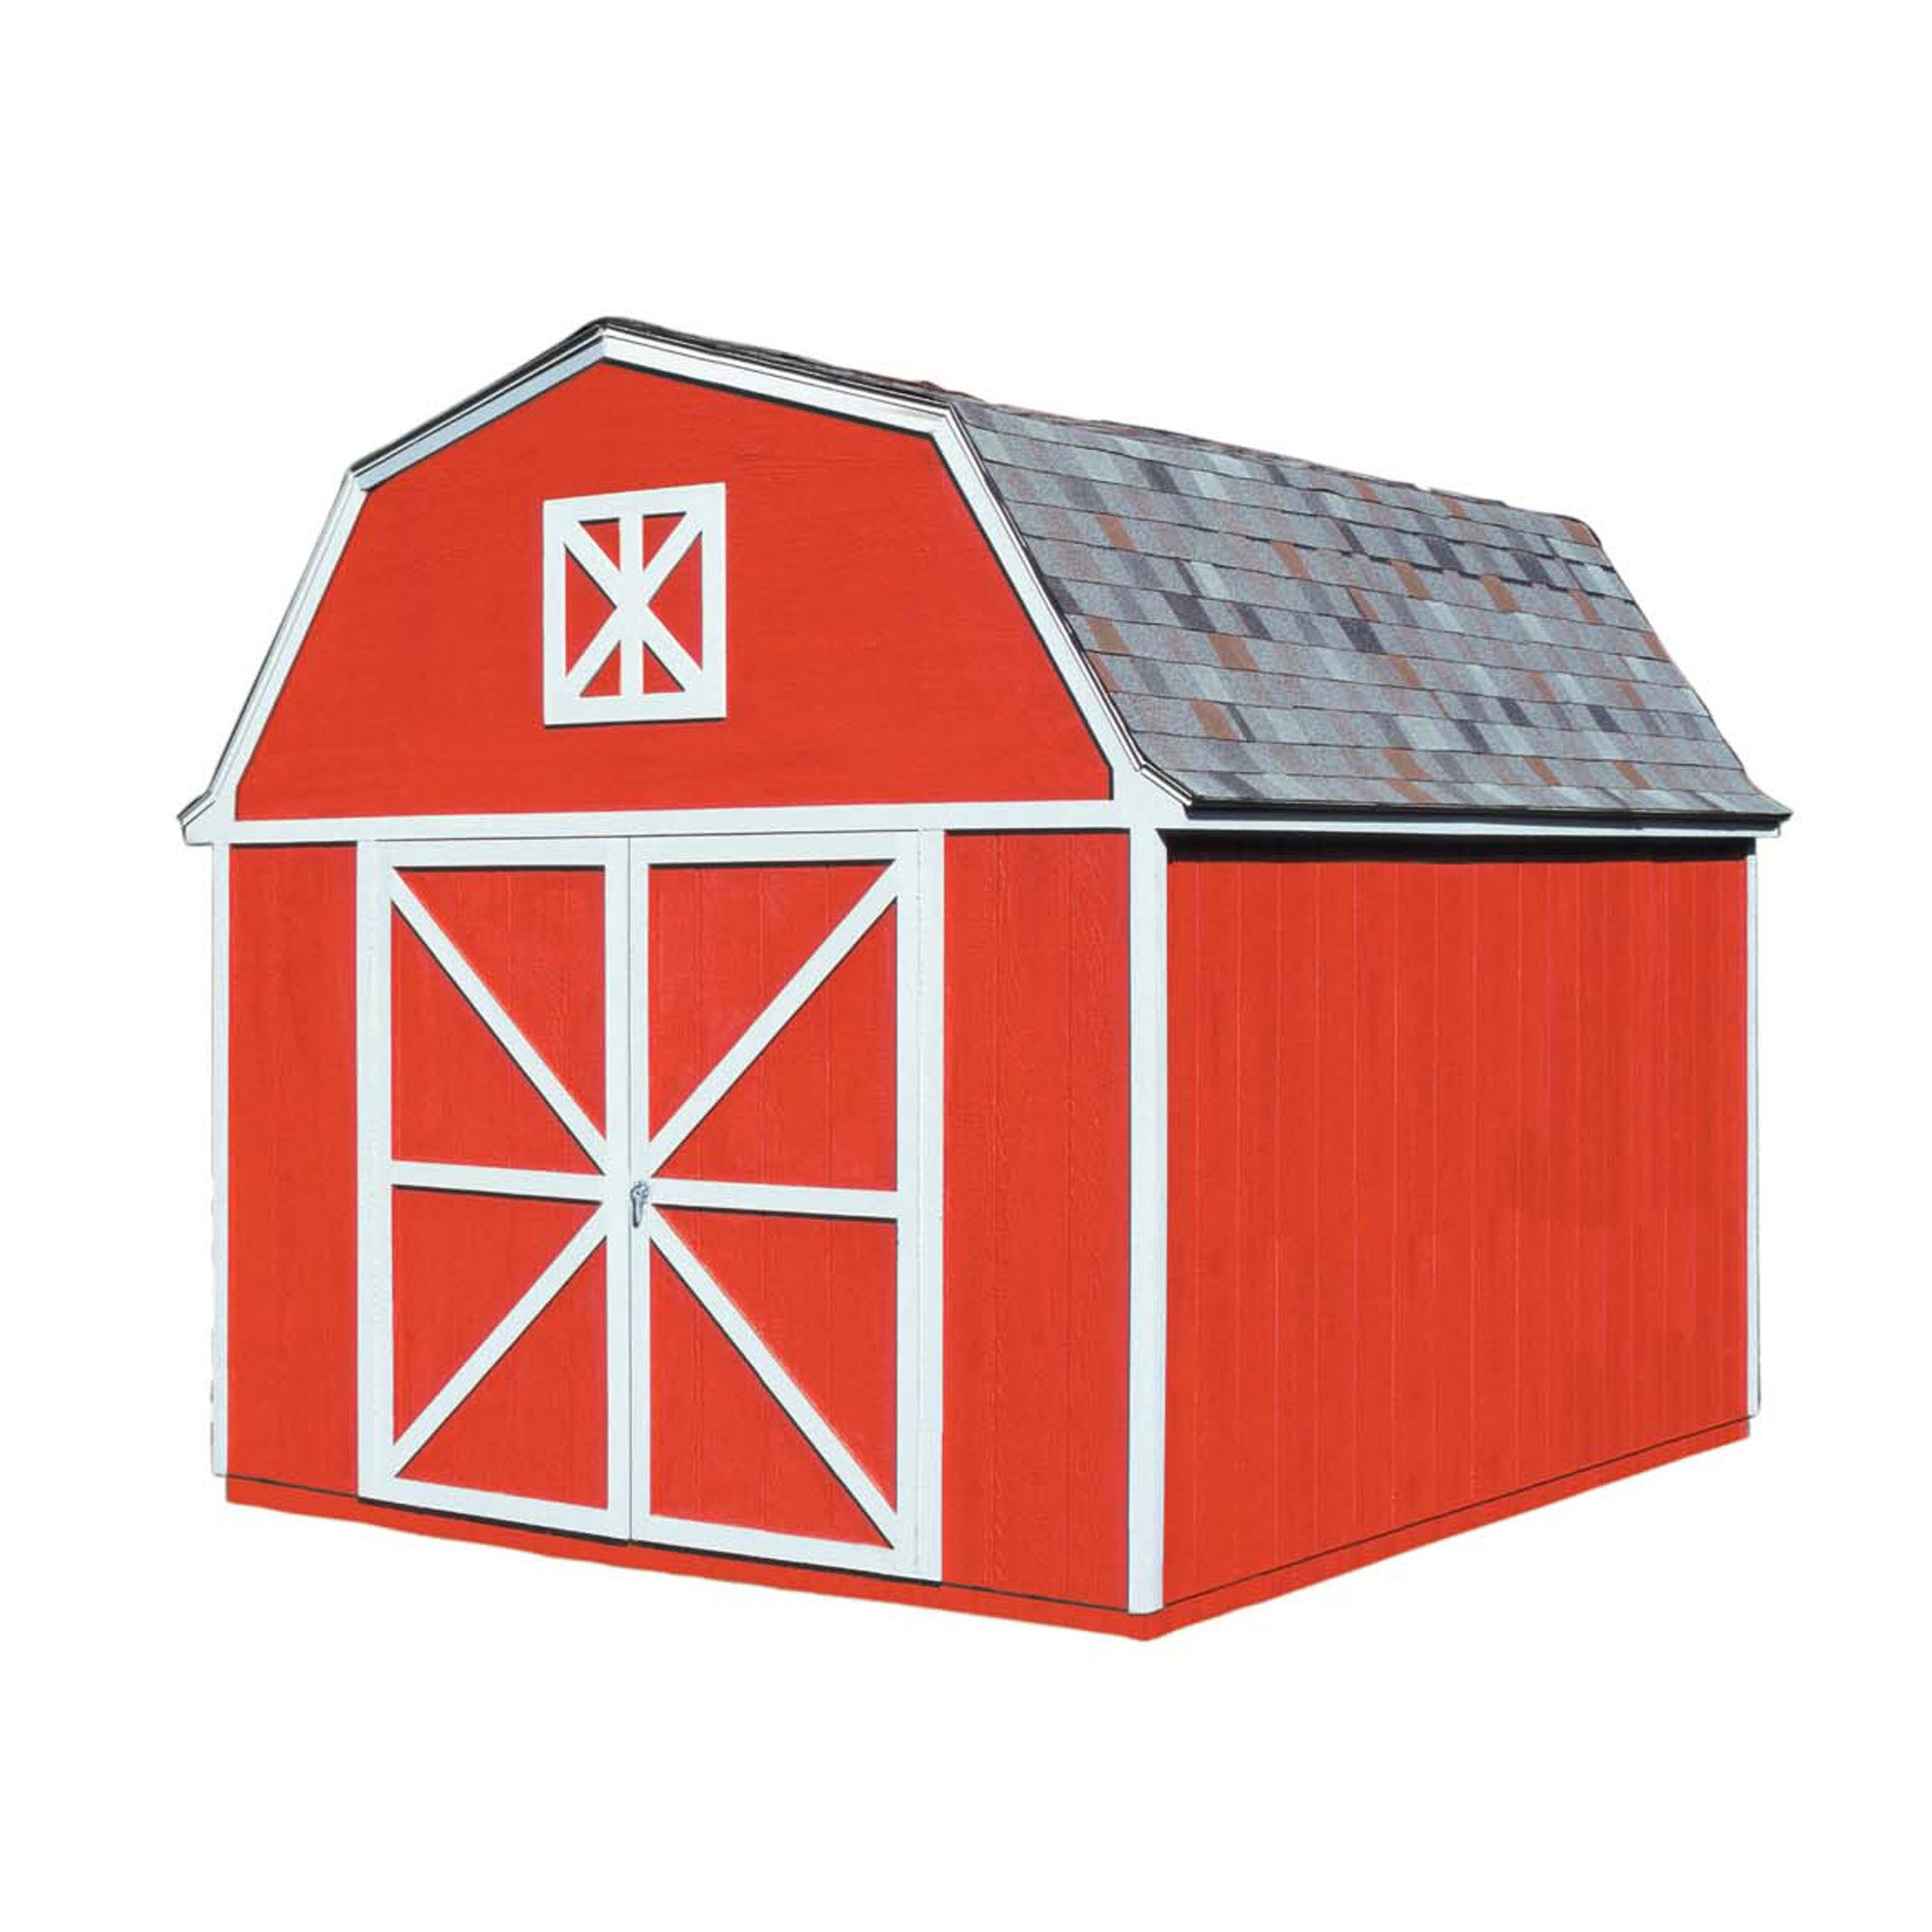 Handy Home Products Berkley Wooden Storage Shed, 10 by 12-Feet by Handy Home Products